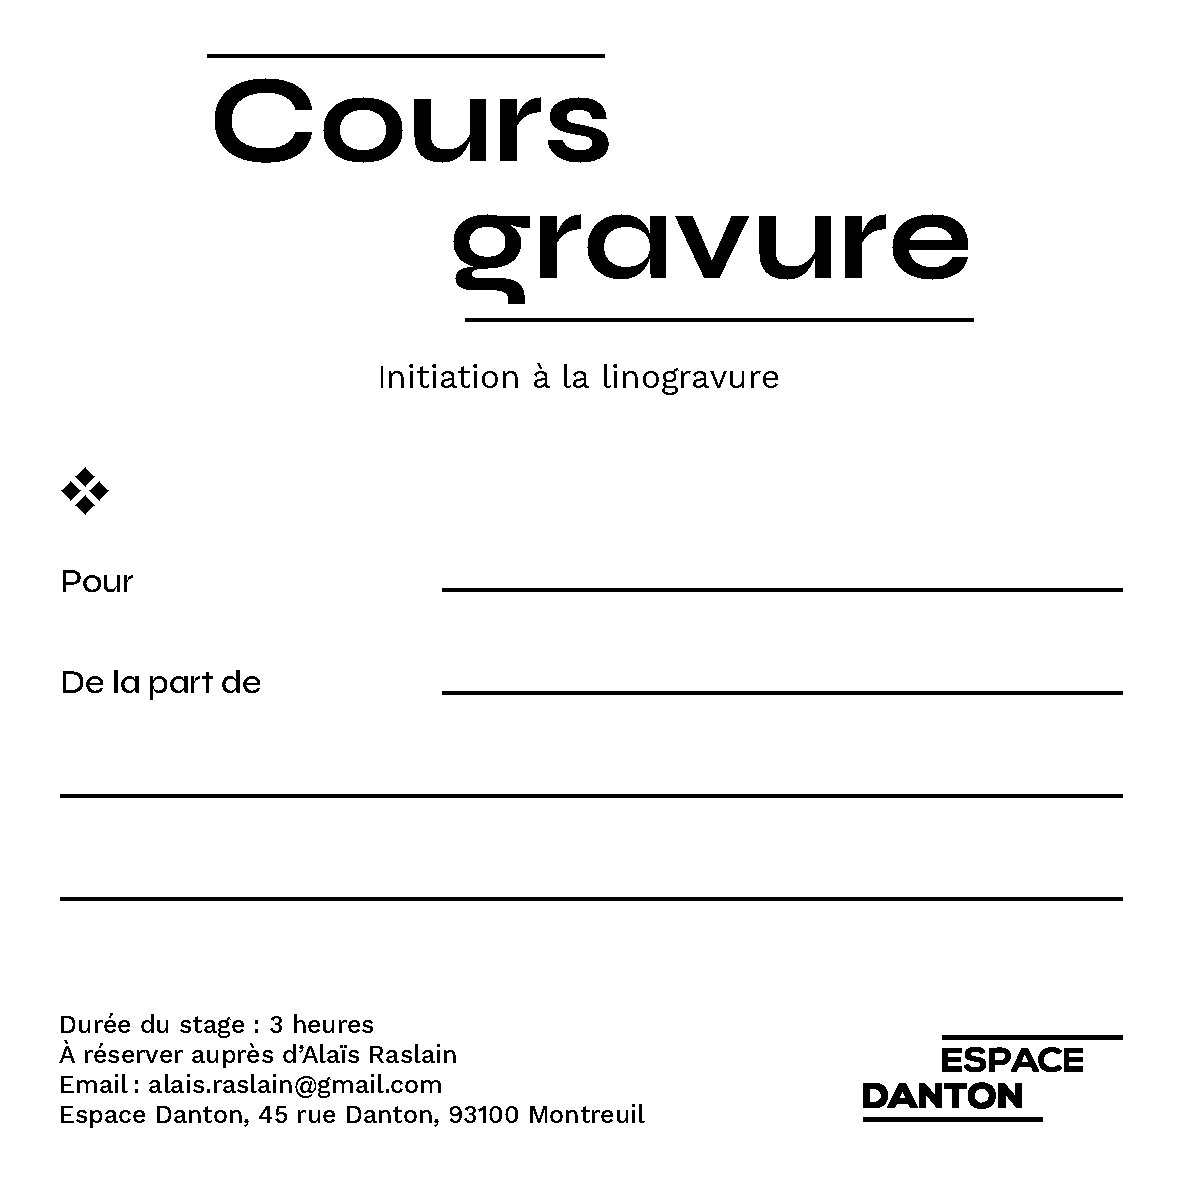 cours gravure